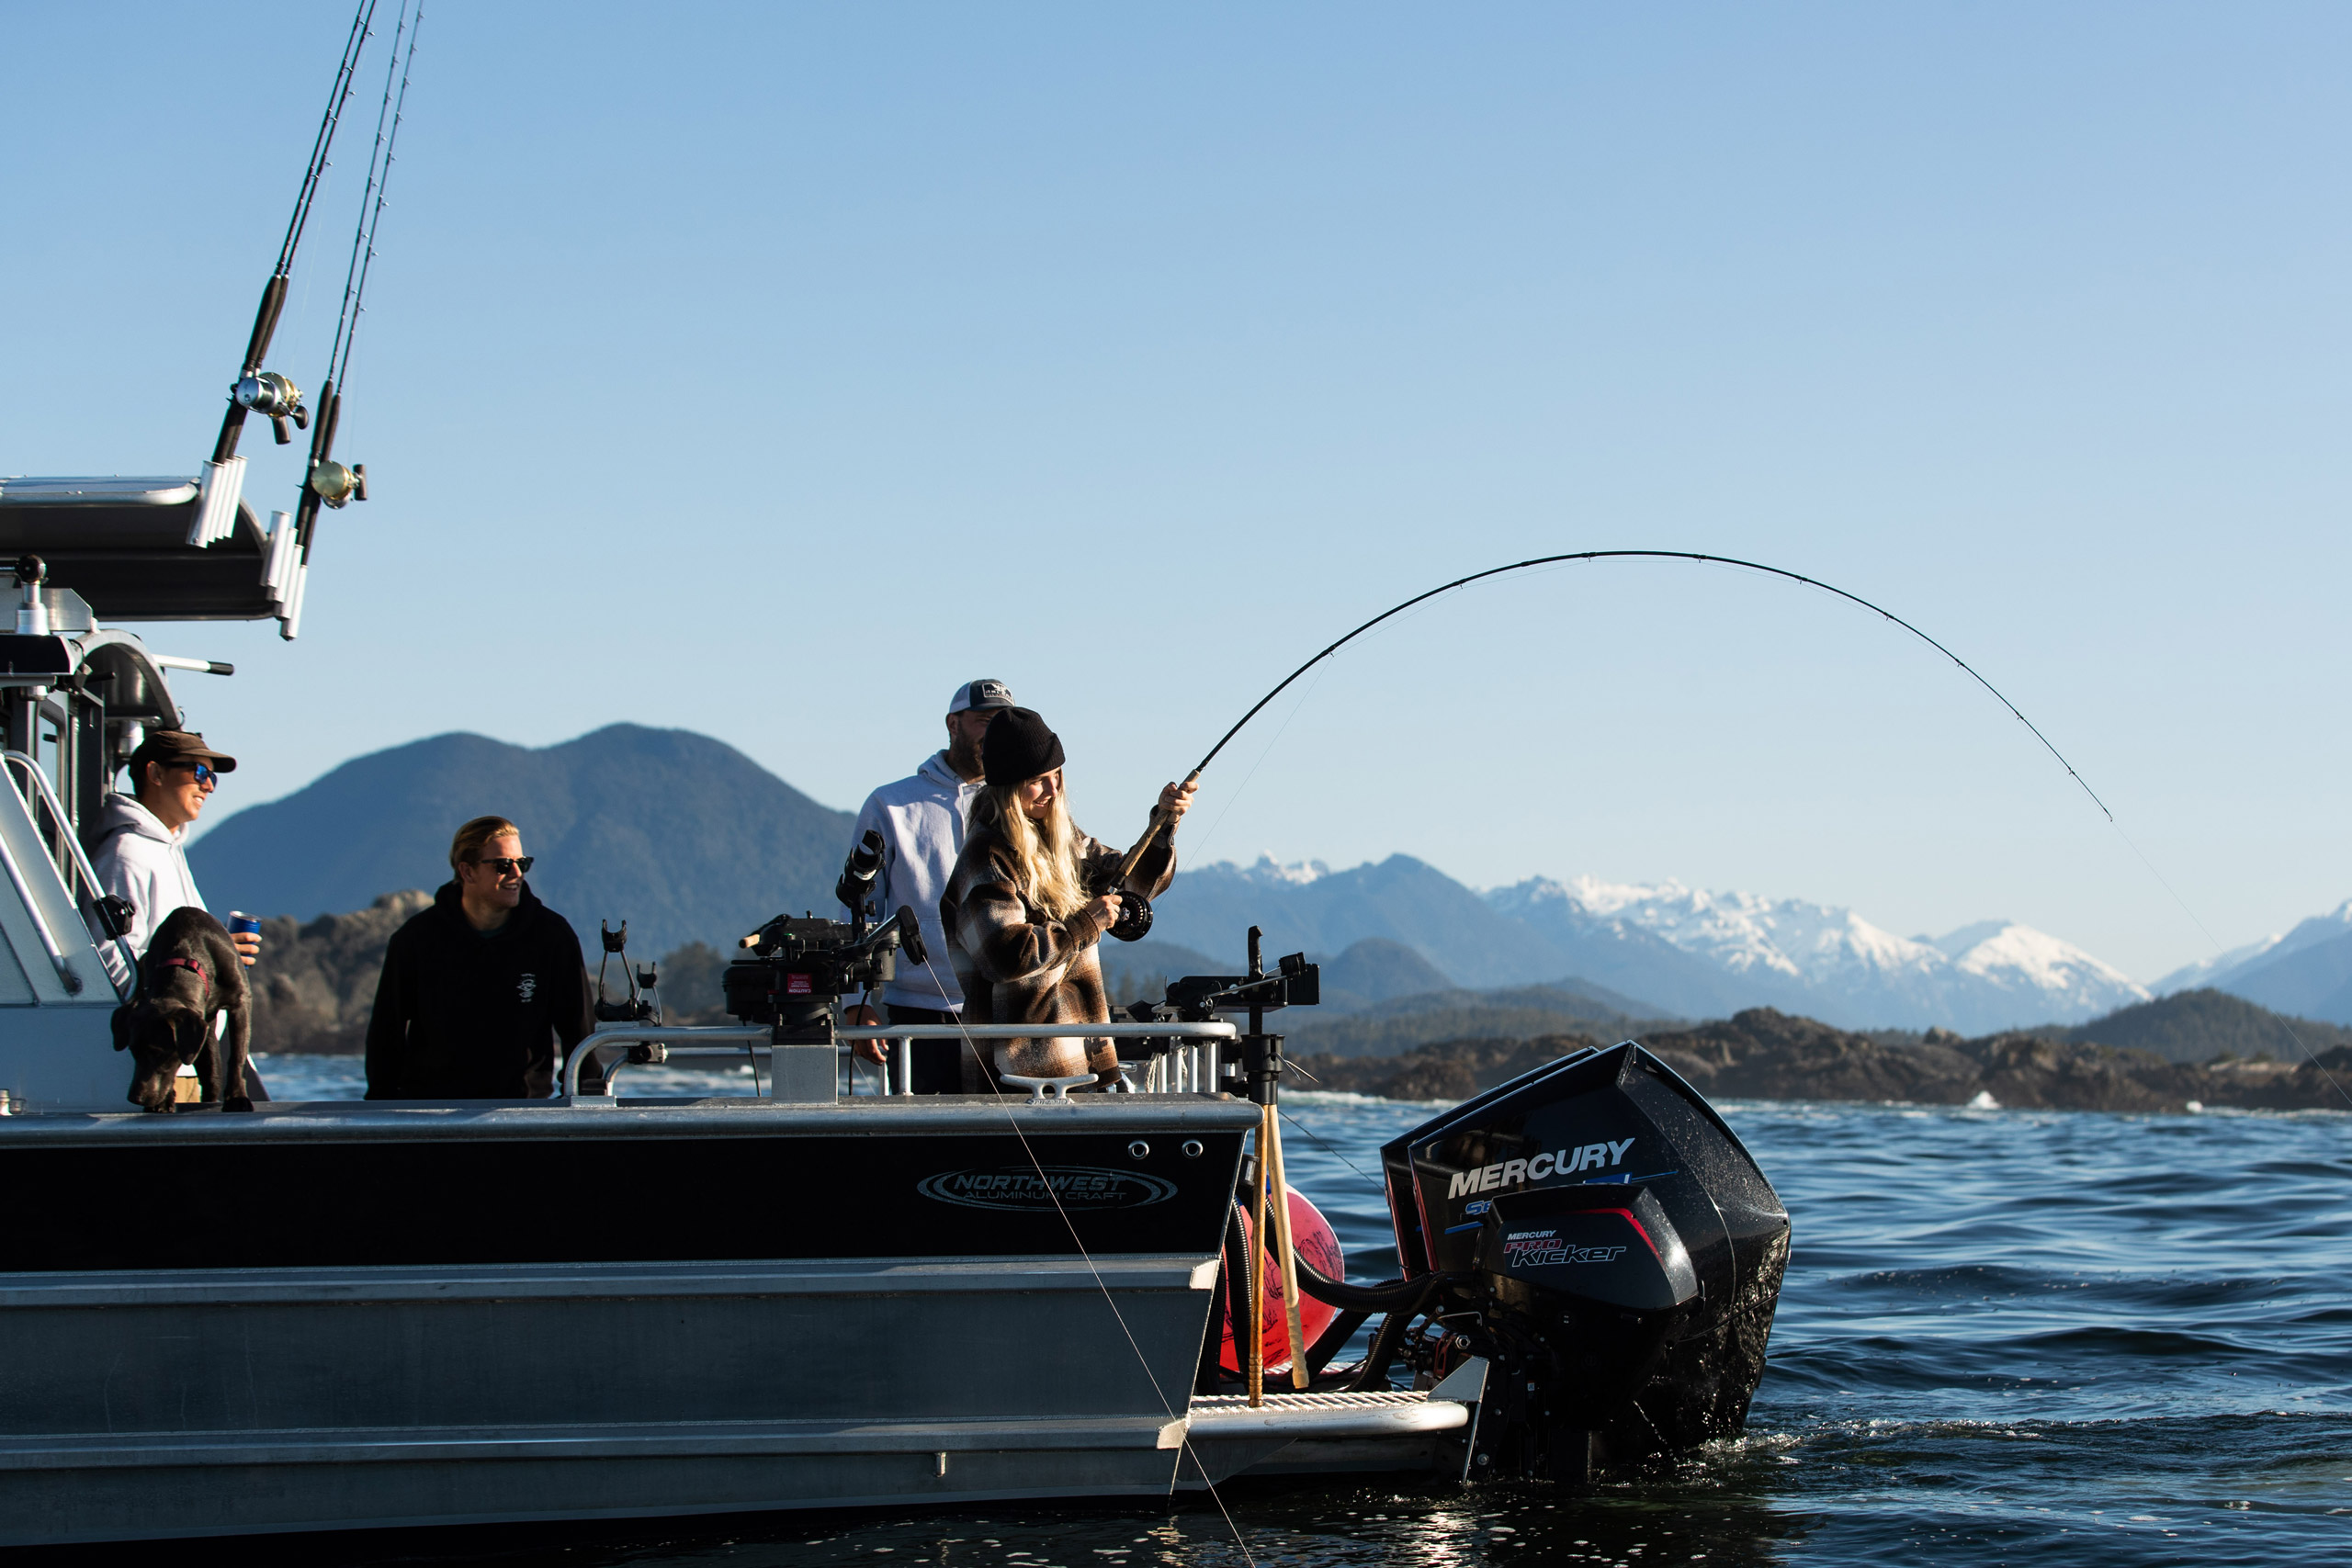 Contact Us Today to Book Your 2021 Tuna, Halibut or Salmon Fishing Adventure!